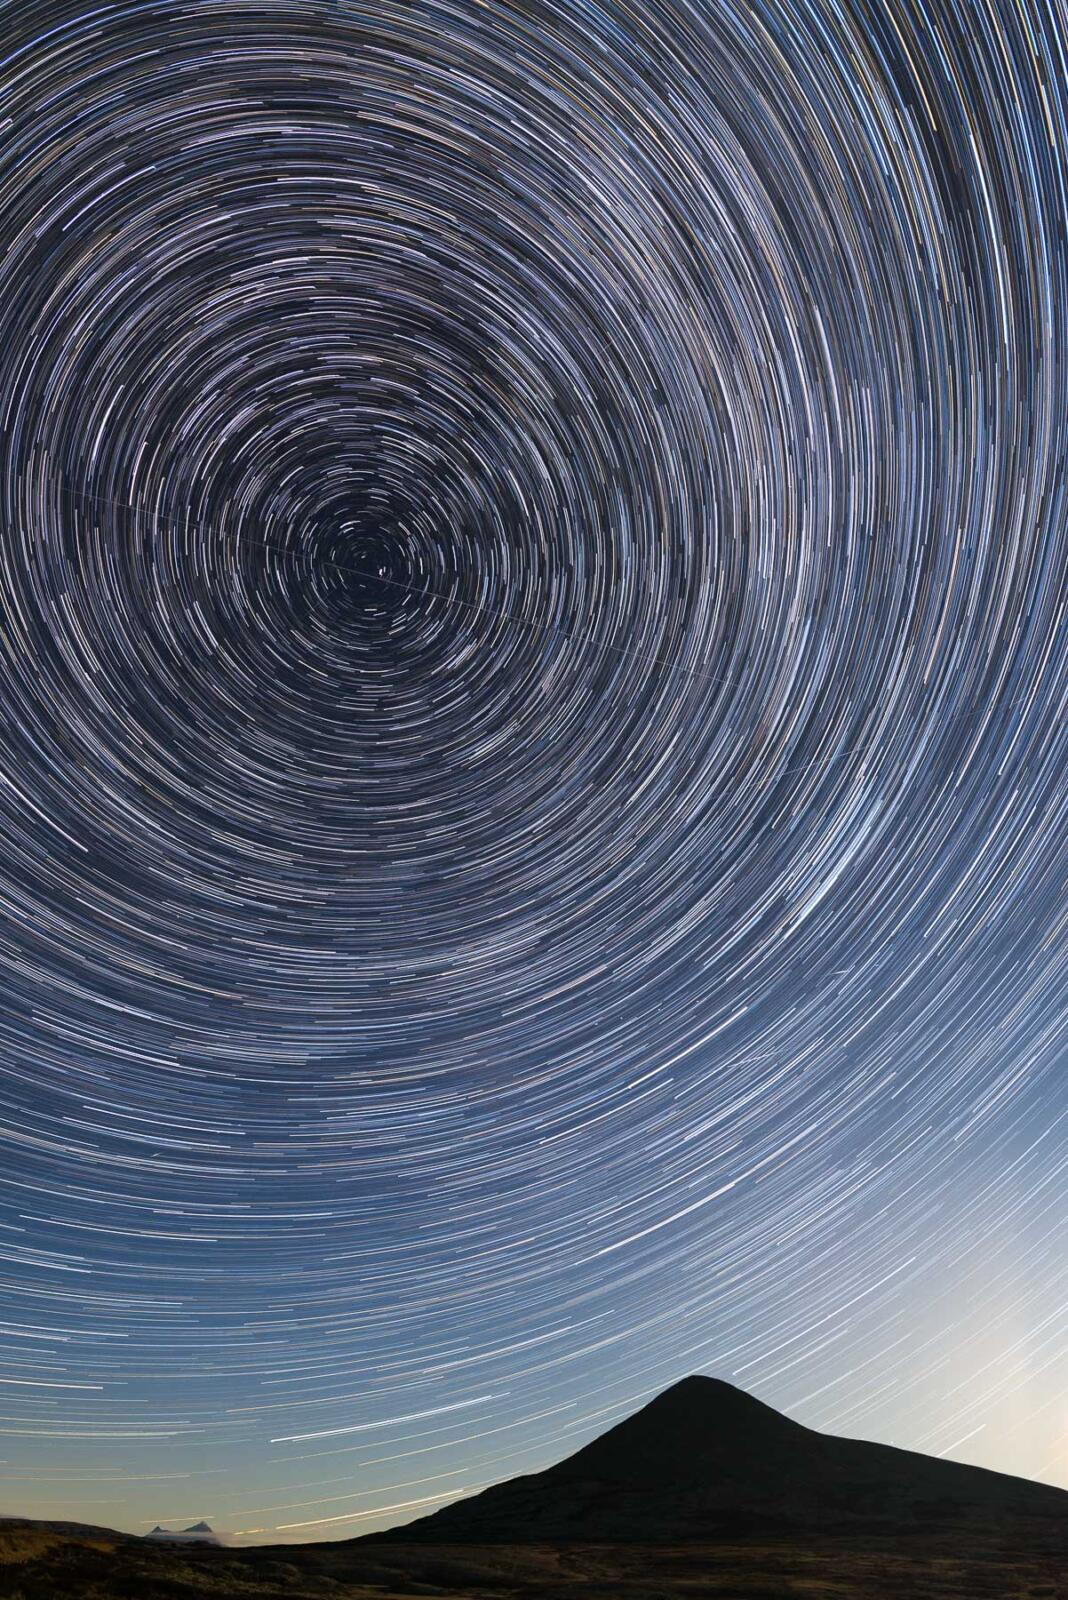 Muen Milkyway star trail